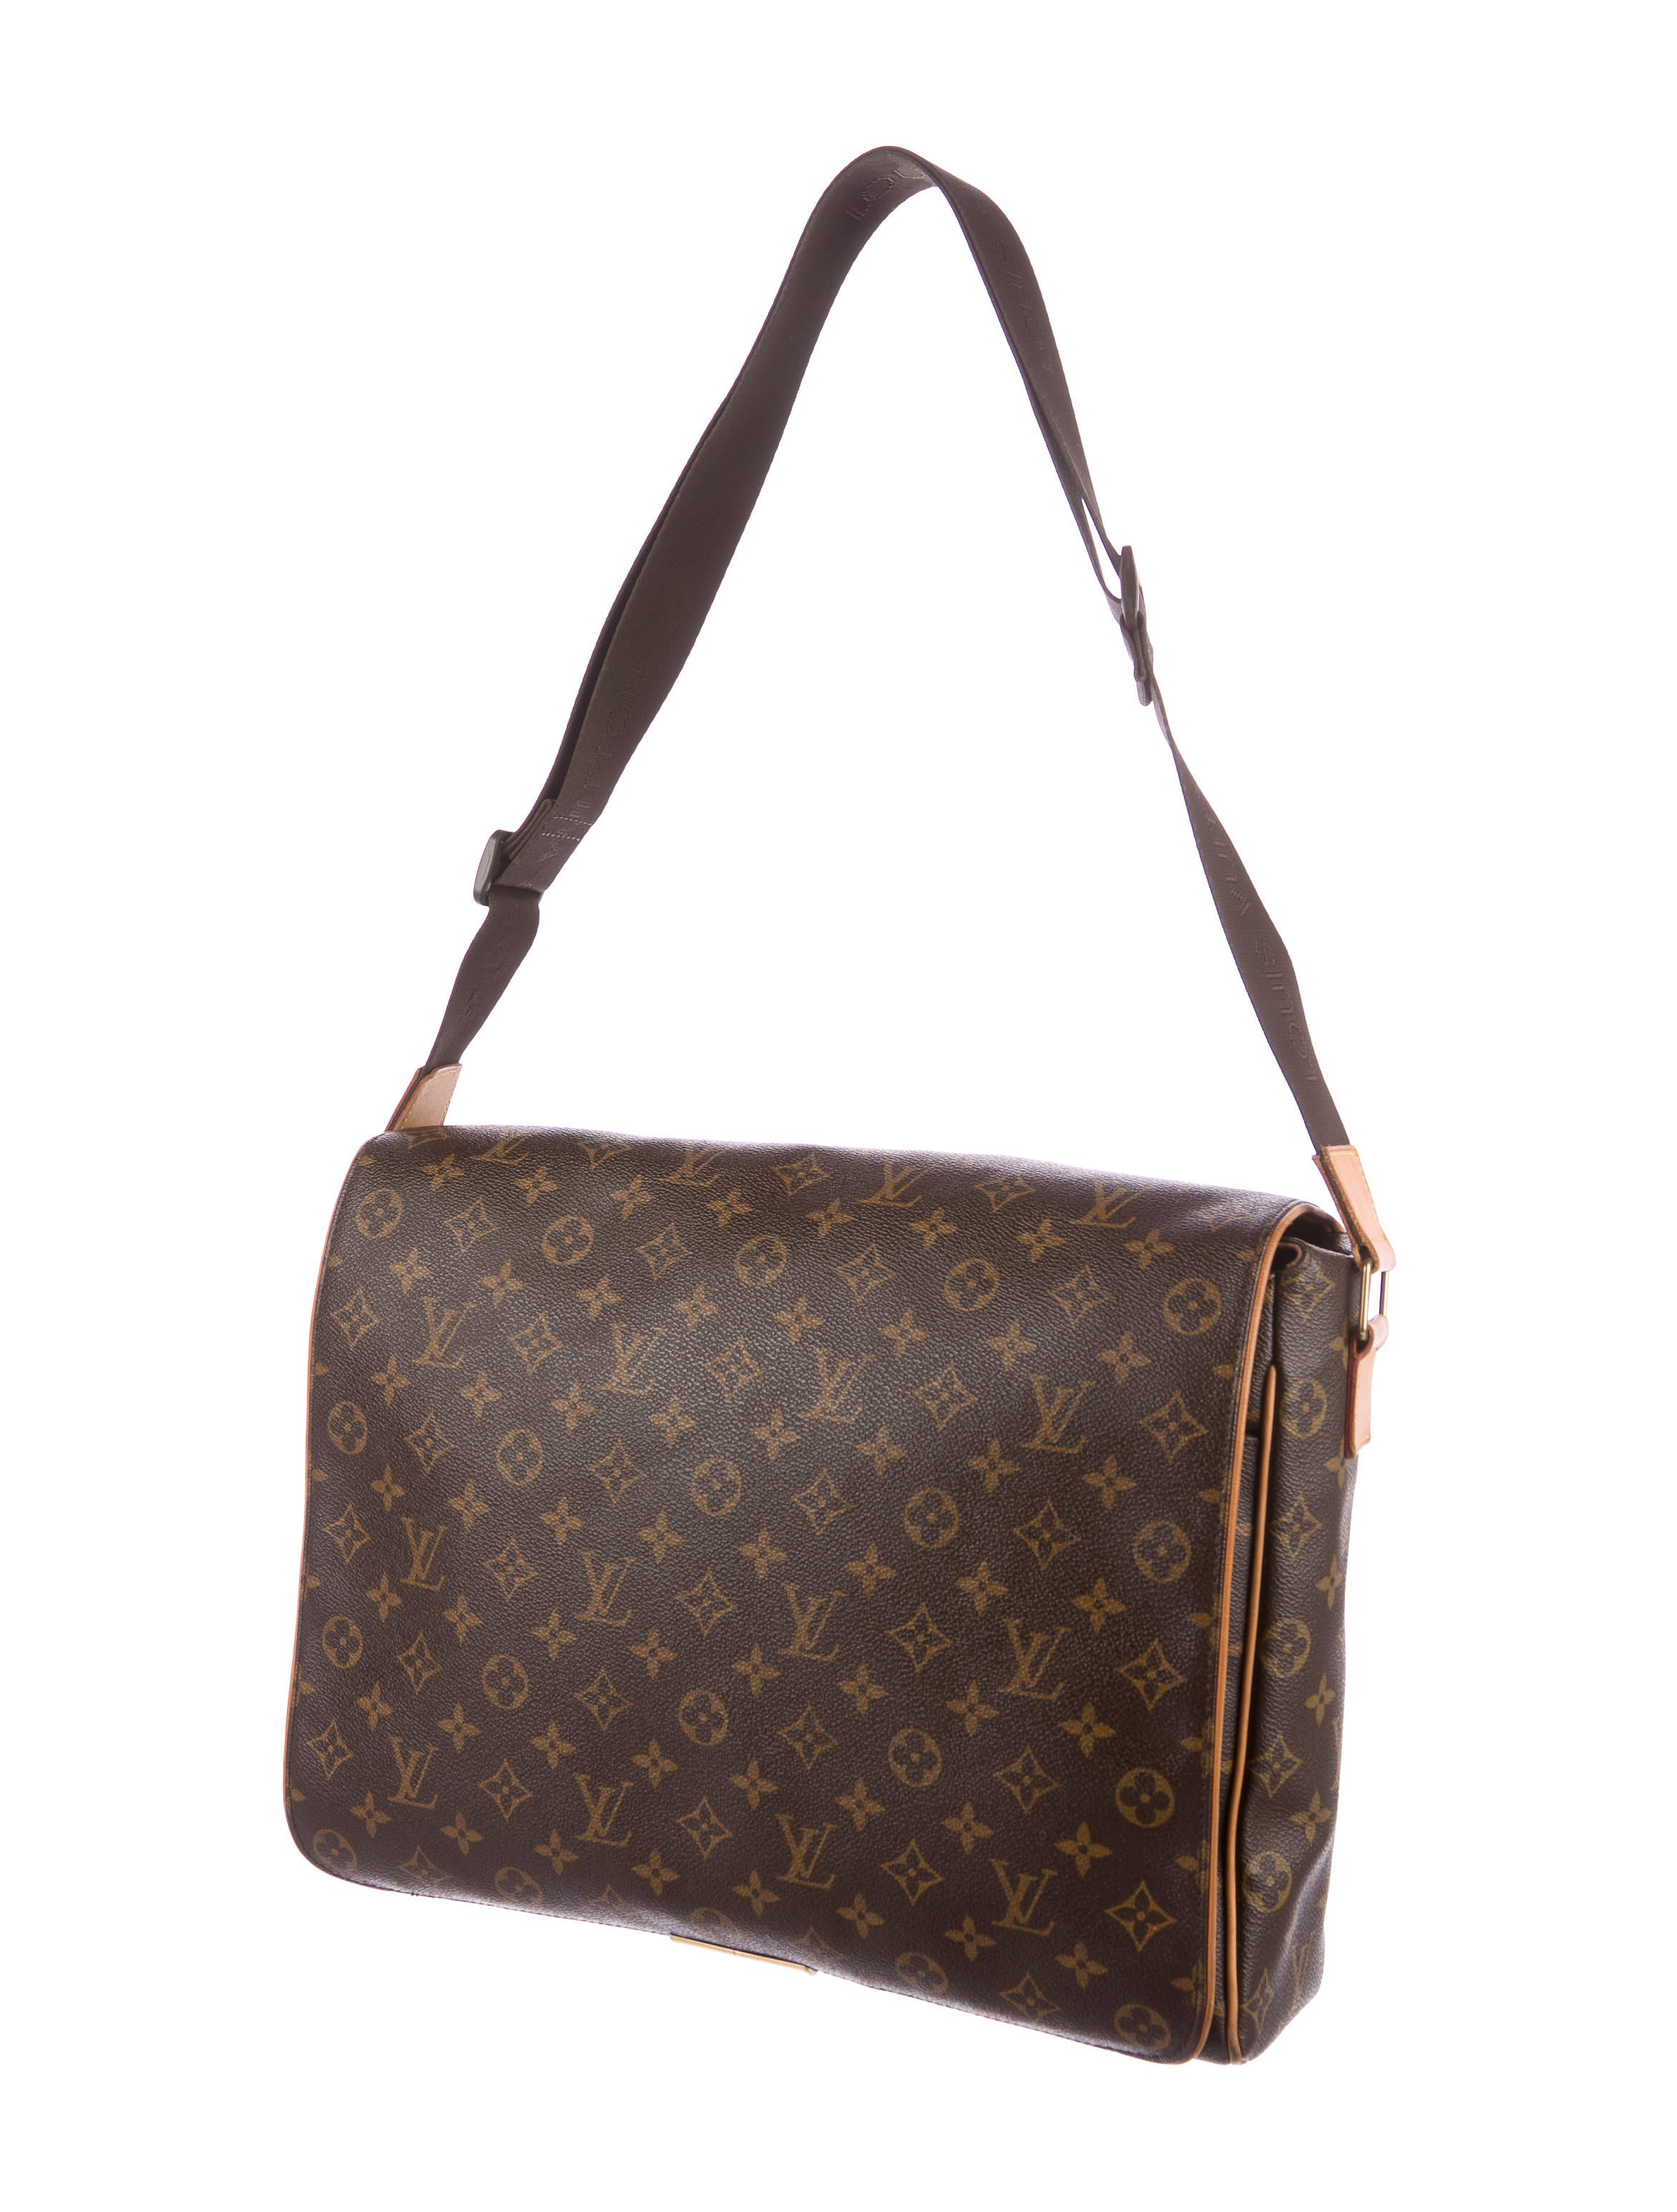 Louis vuitton monogram abbesses messenger bag bags for Louis vuitton miroir bags